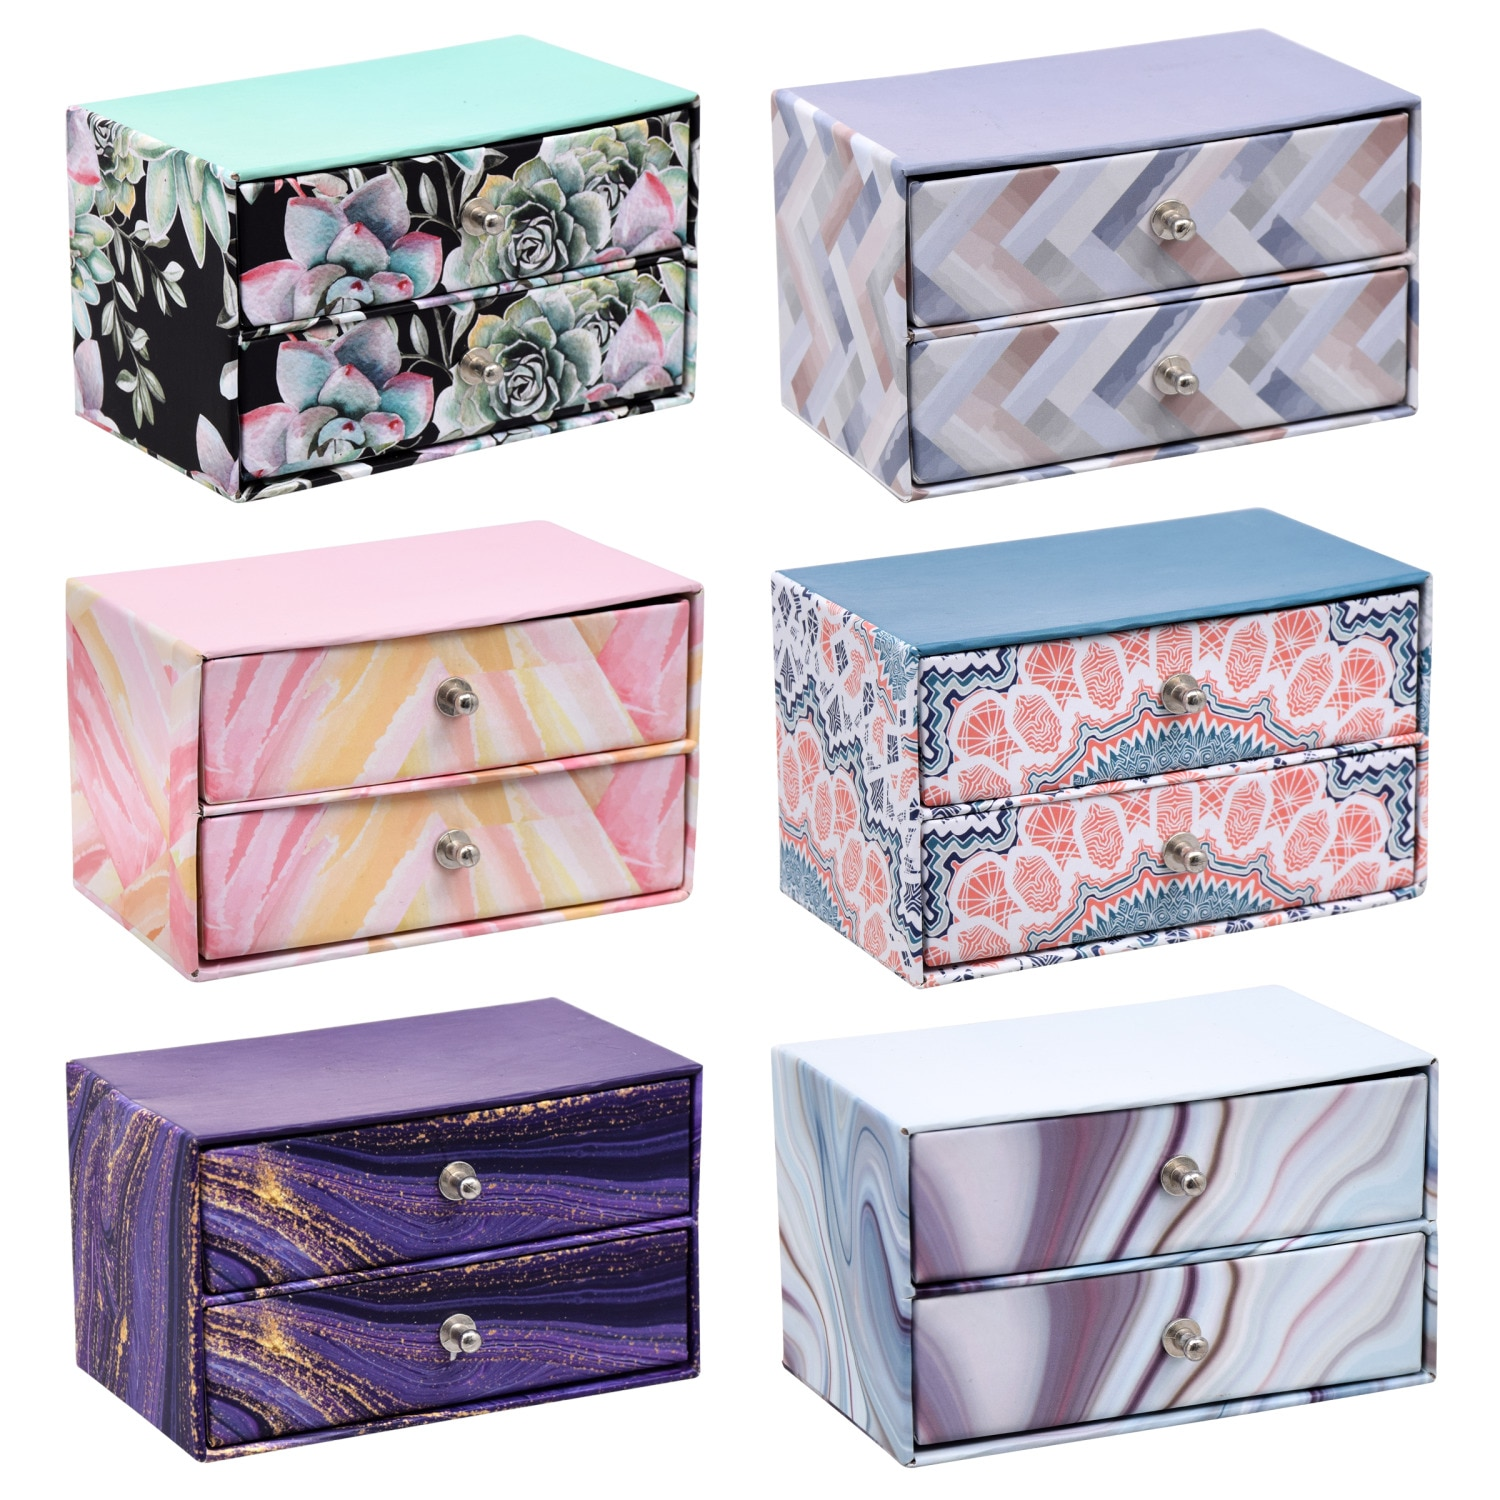 Trinket Boxes with Drawers